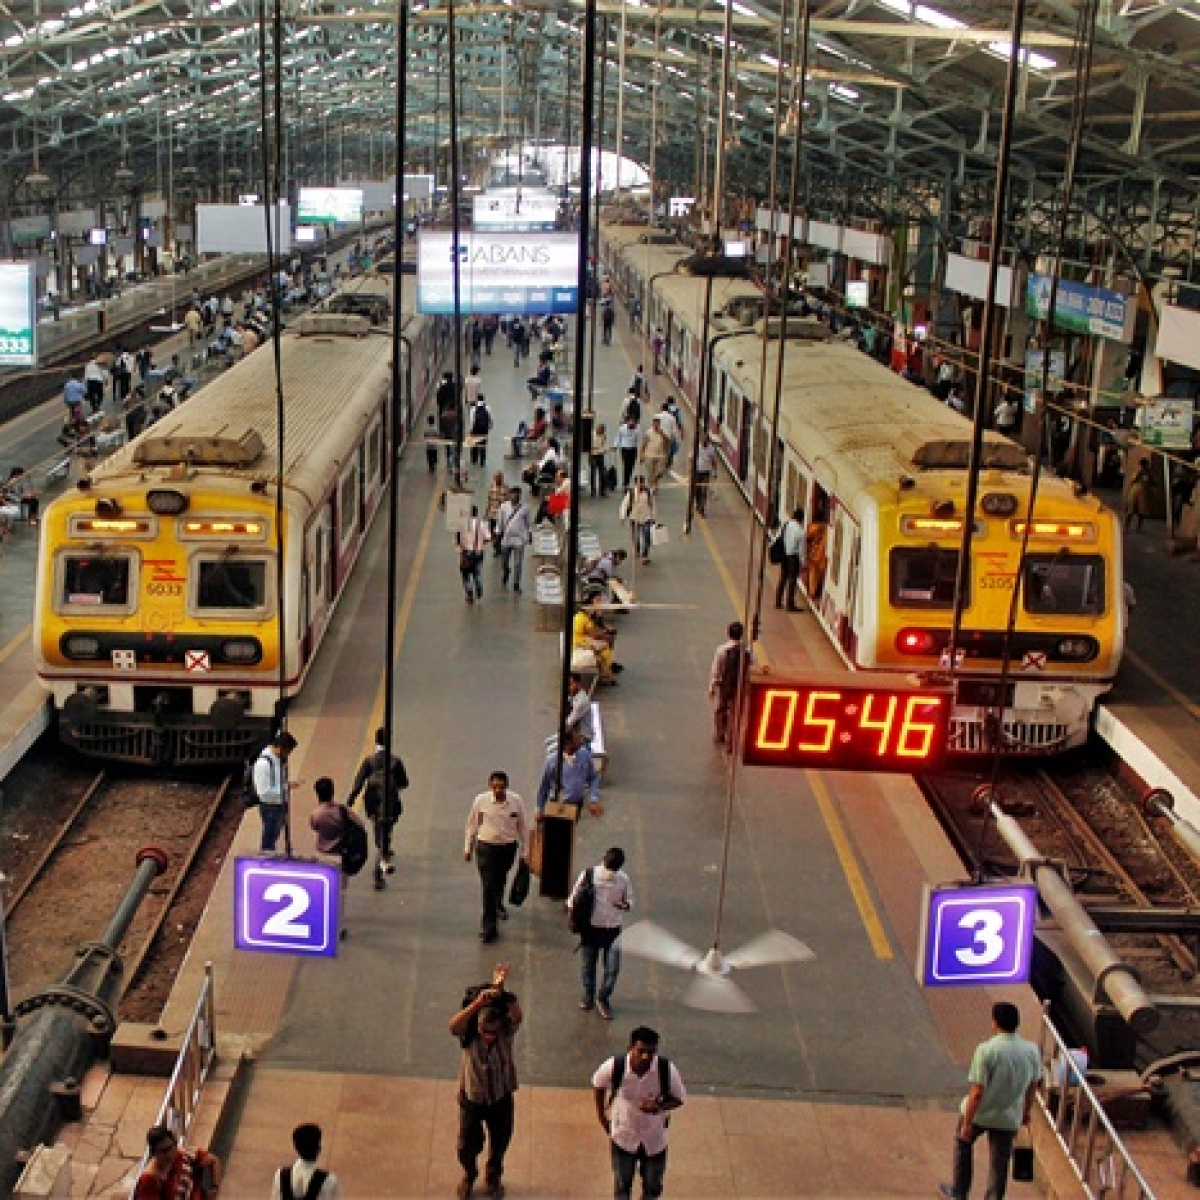 Coronavirus Update in India: Railways cancels all trains, including Mumbai locals, till March 31